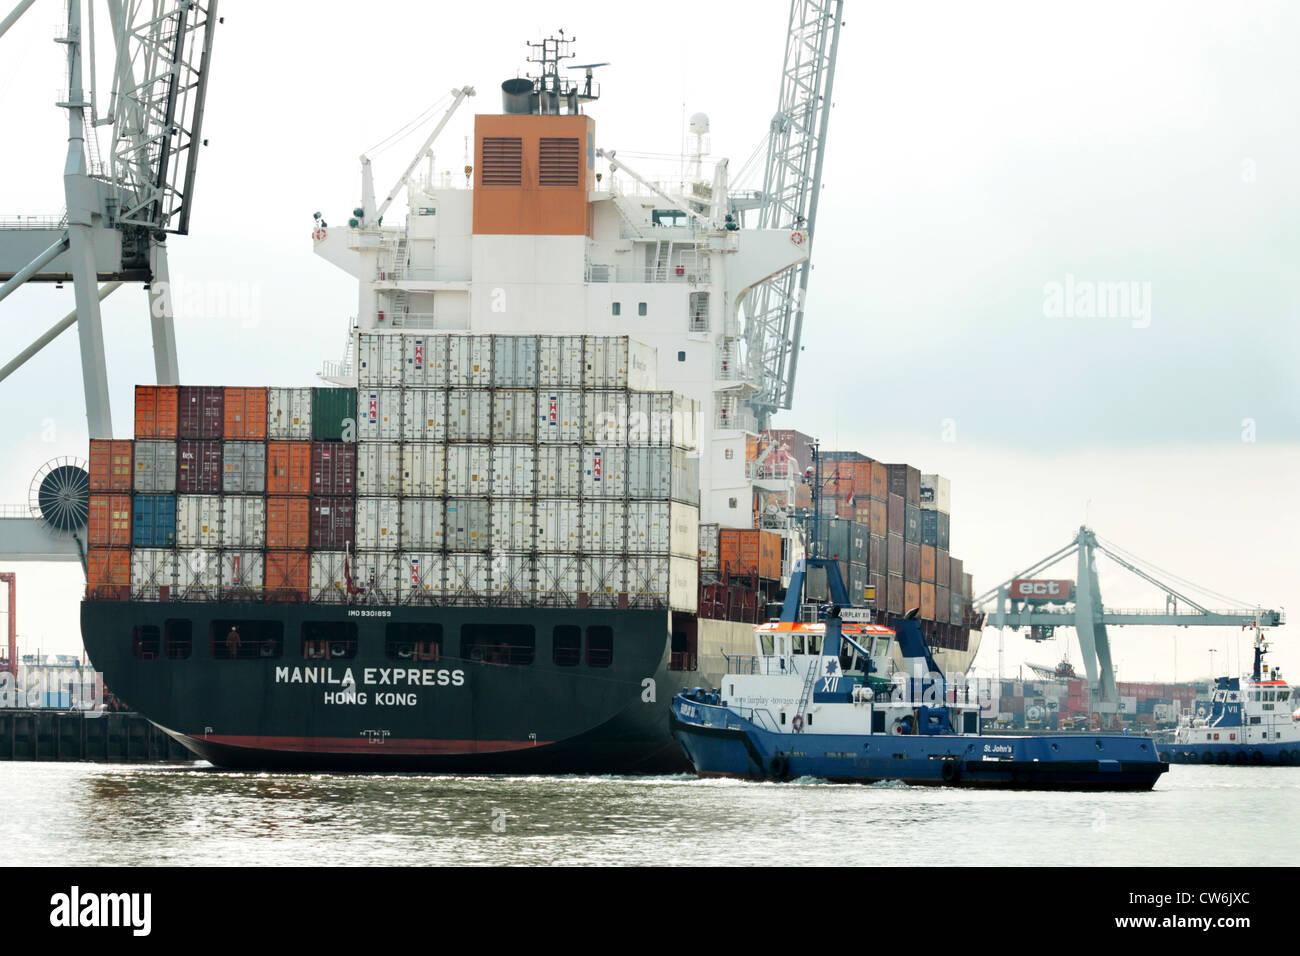 laden containership with tug in Port of Rotterdam Stock Photo